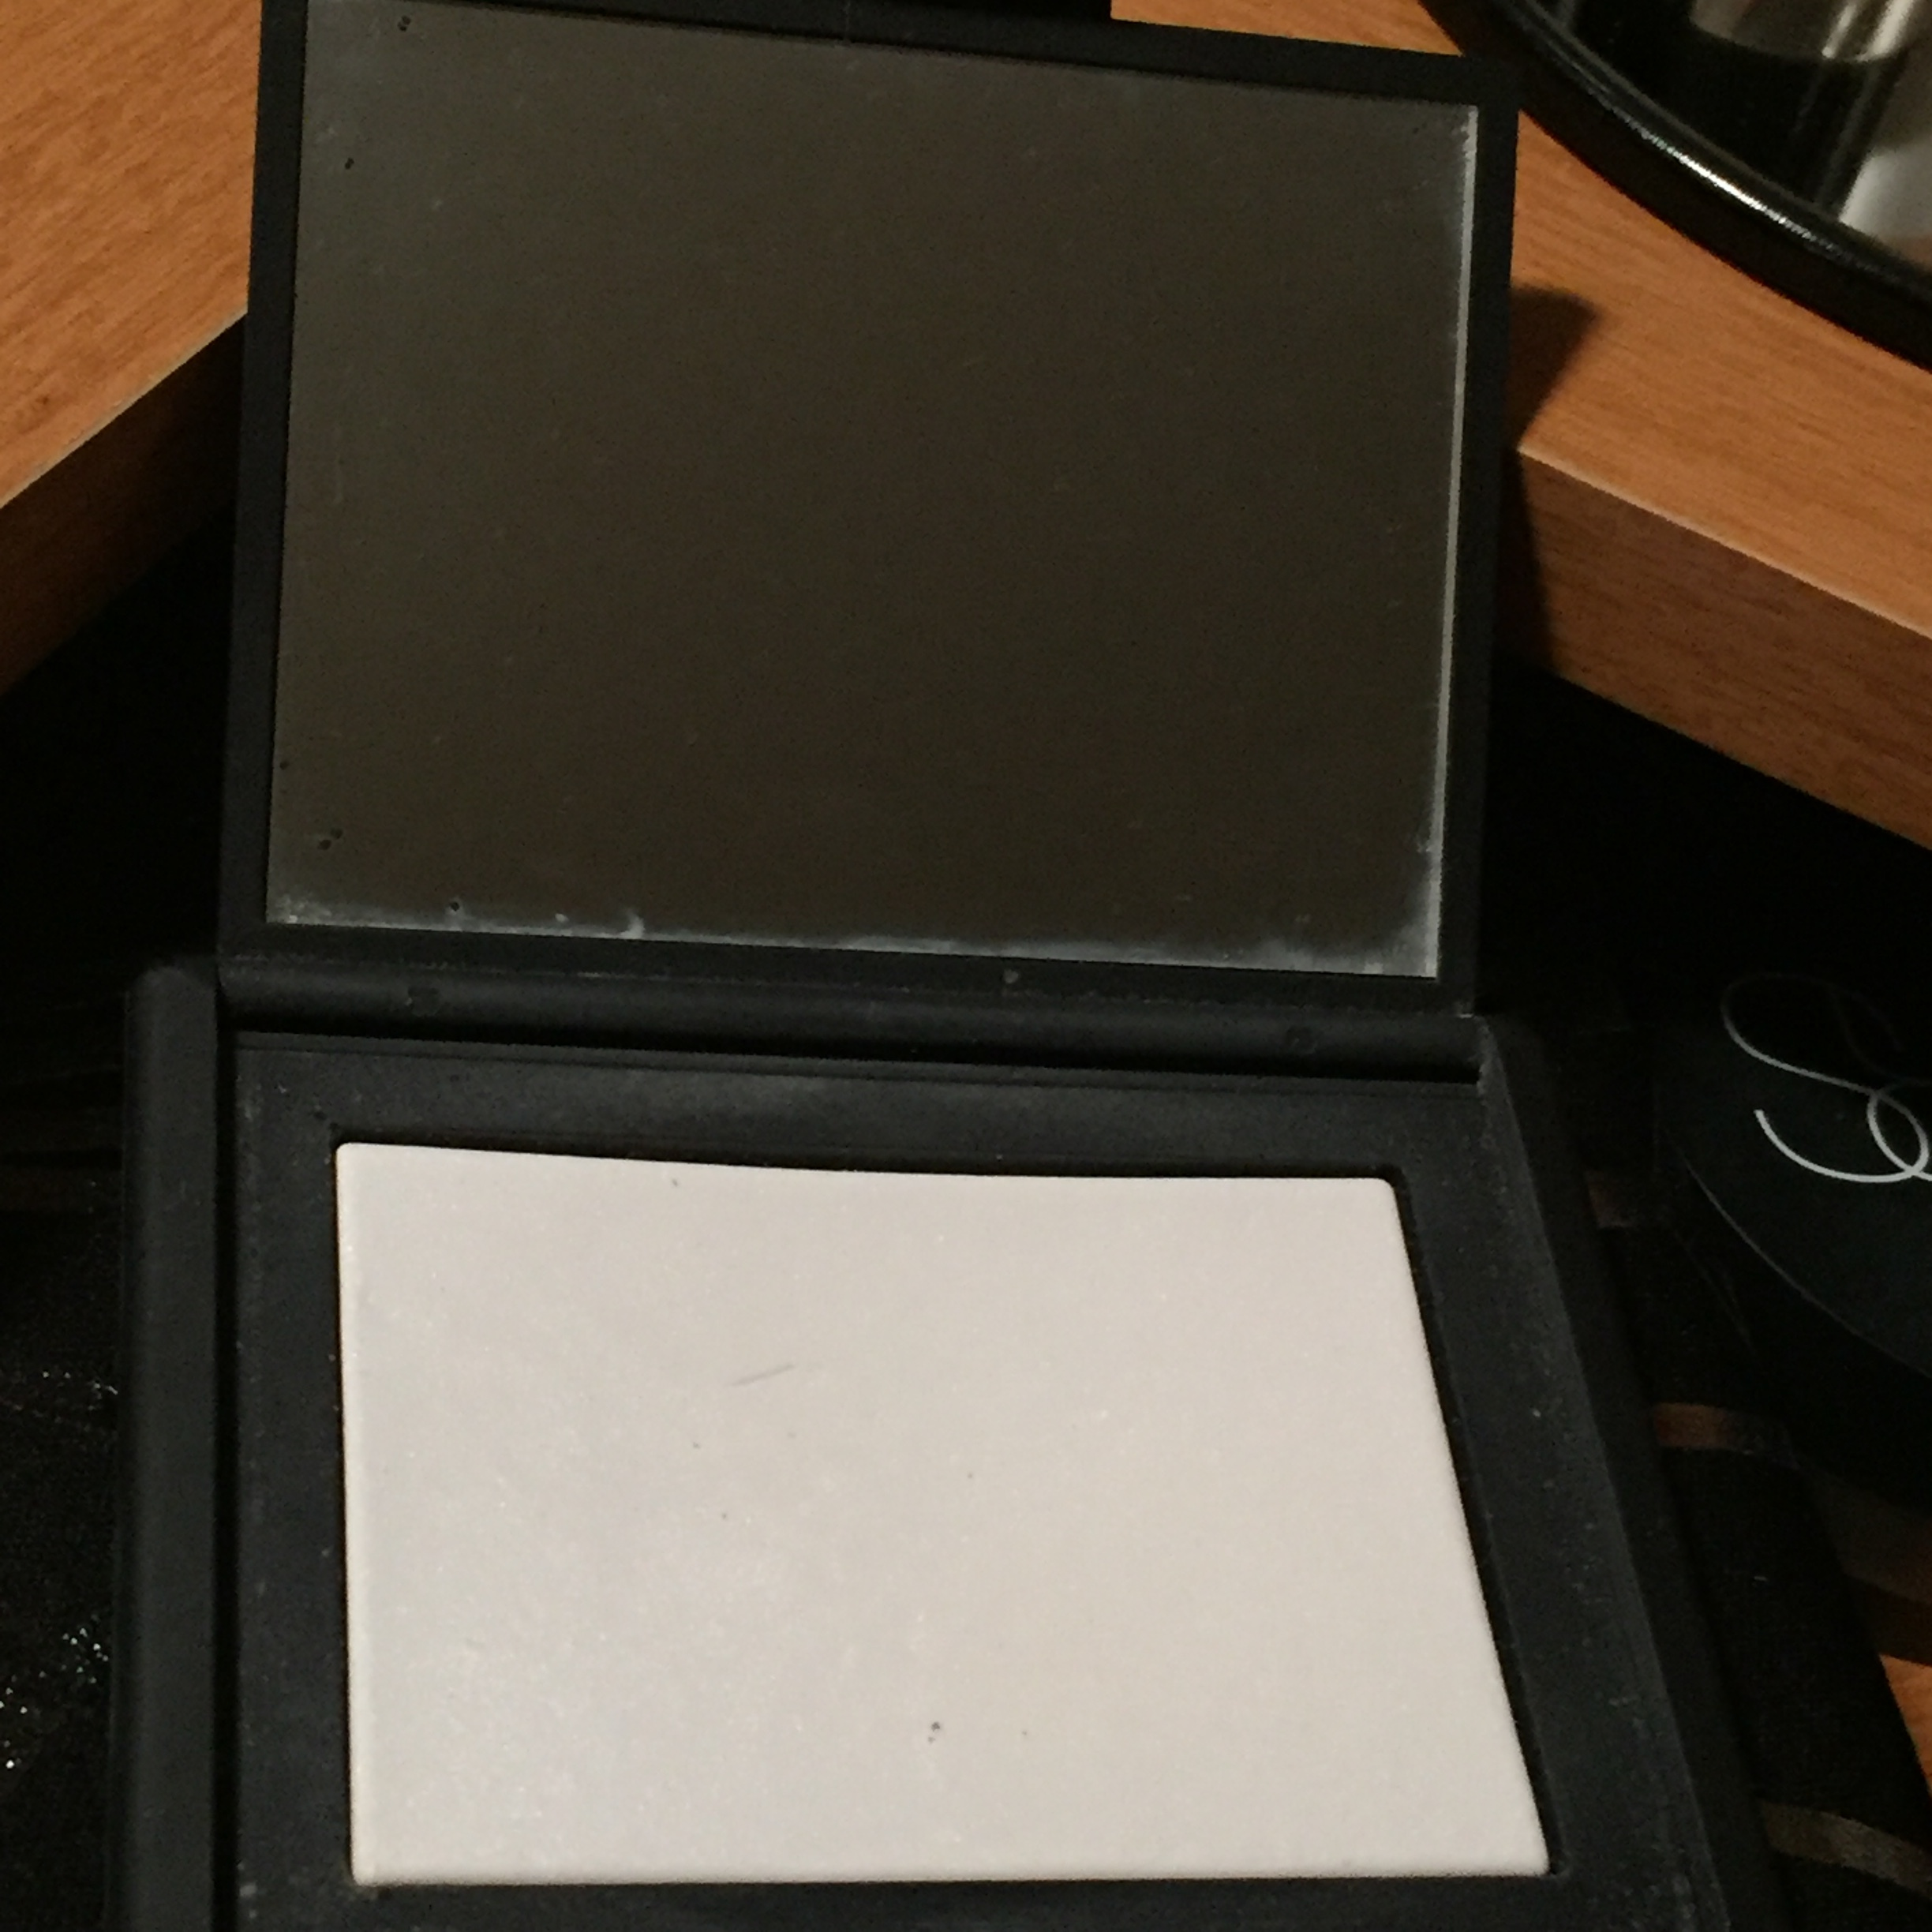 nars light reflecting pressed setting powder reviews in. Black Bedroom Furniture Sets. Home Design Ideas